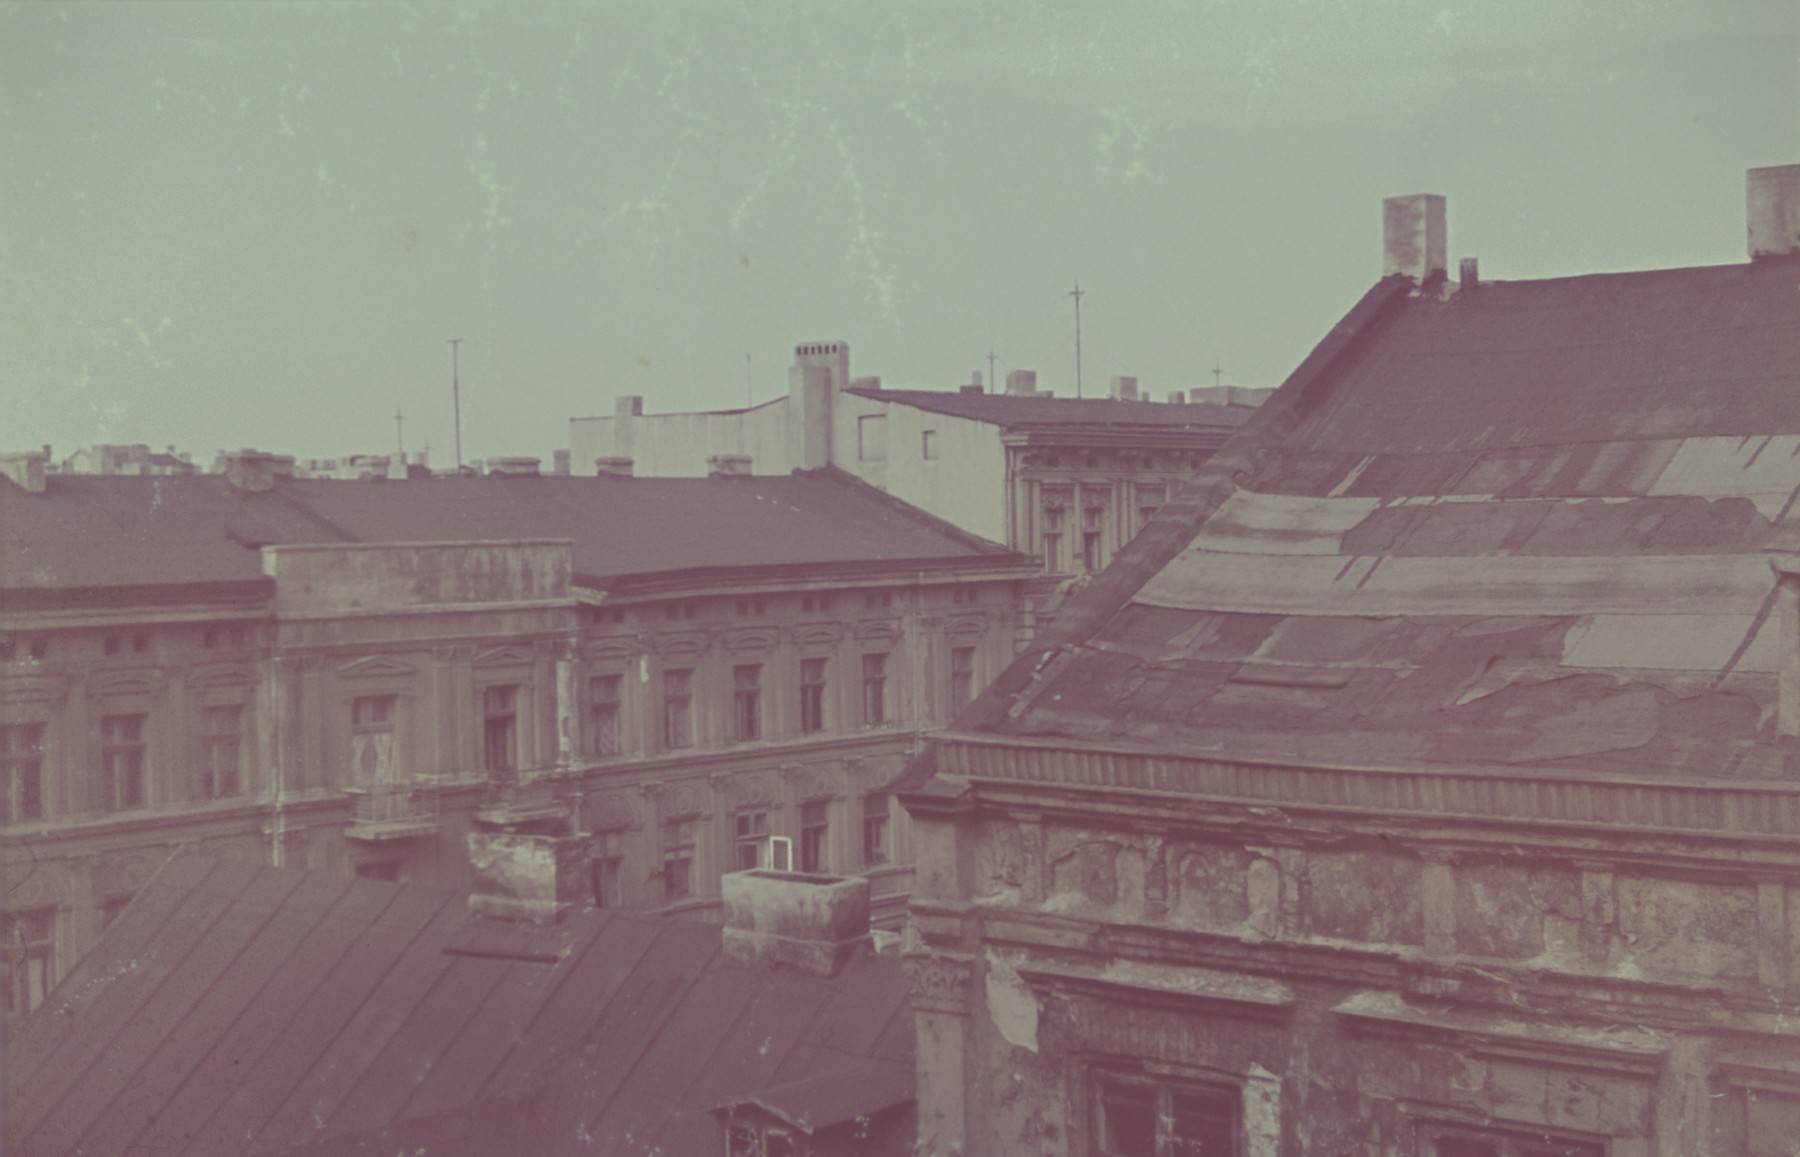 A view of rooftops in or near the Lodz ghetto.